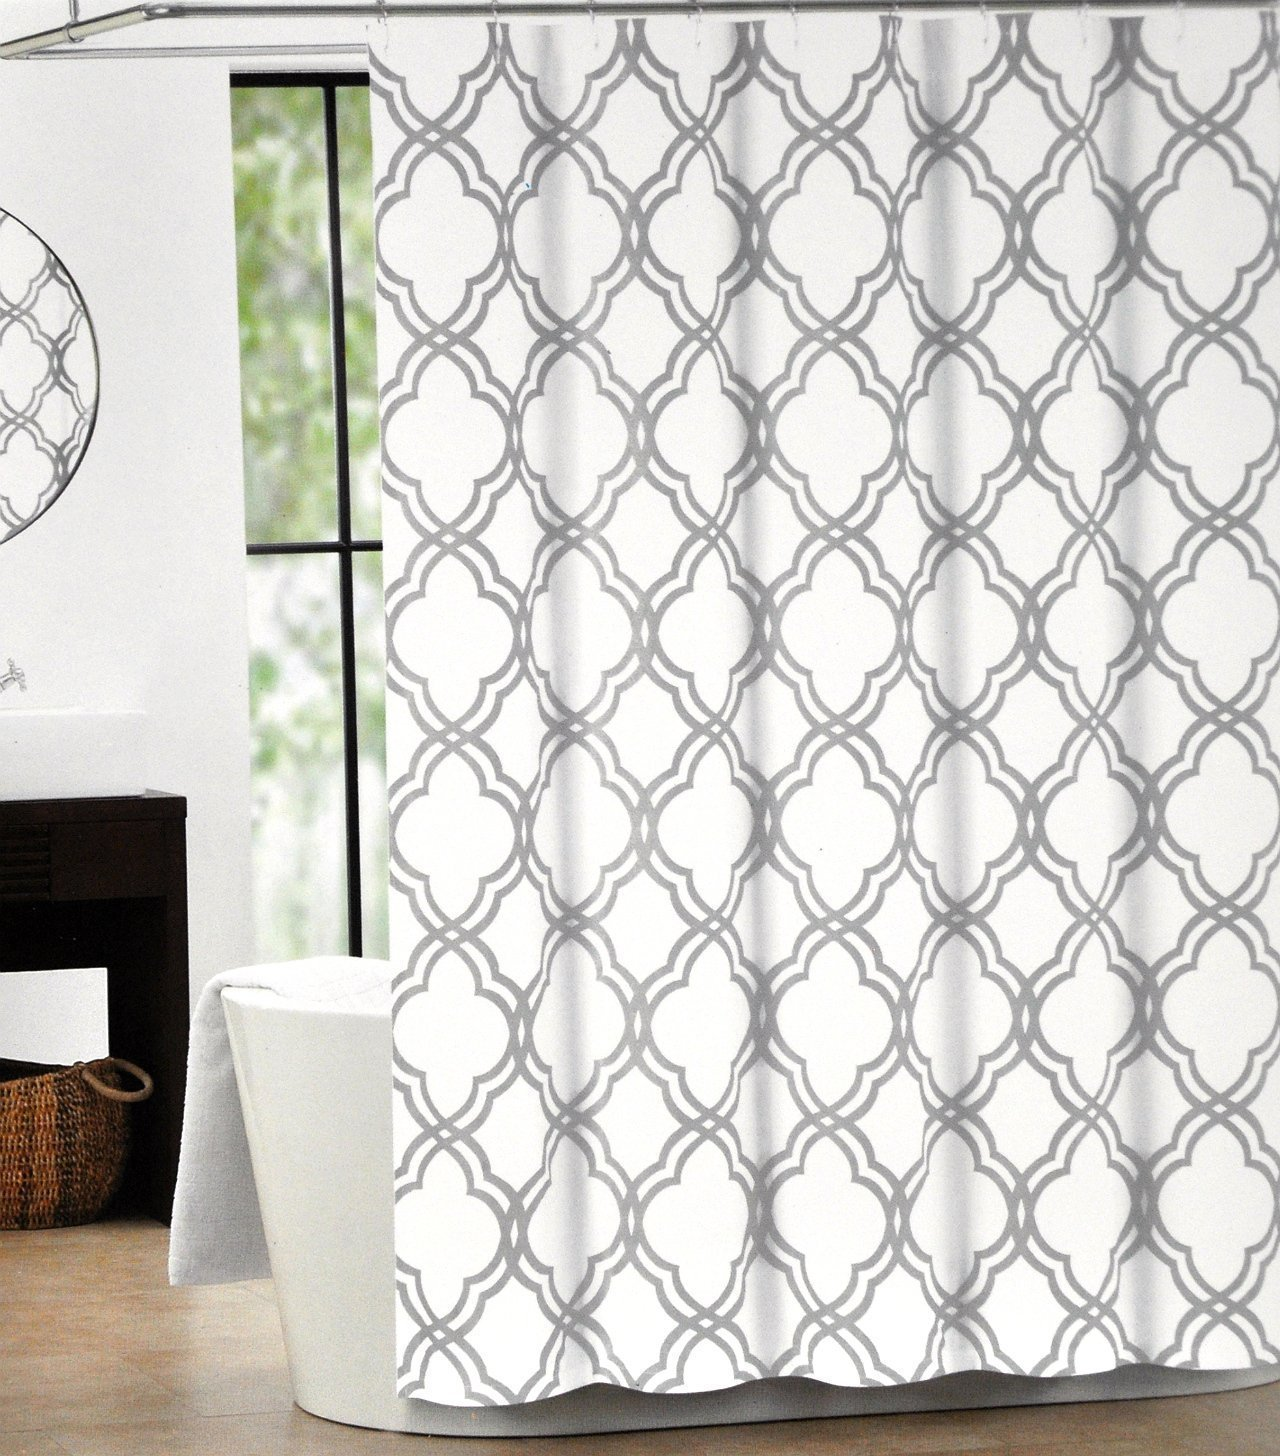 Moroccan curtains fabrics - Memory Home 100 Polyester Fabric Shower Curtain Moroccan Tile Quatrefoil Gray And White Lattice Shower